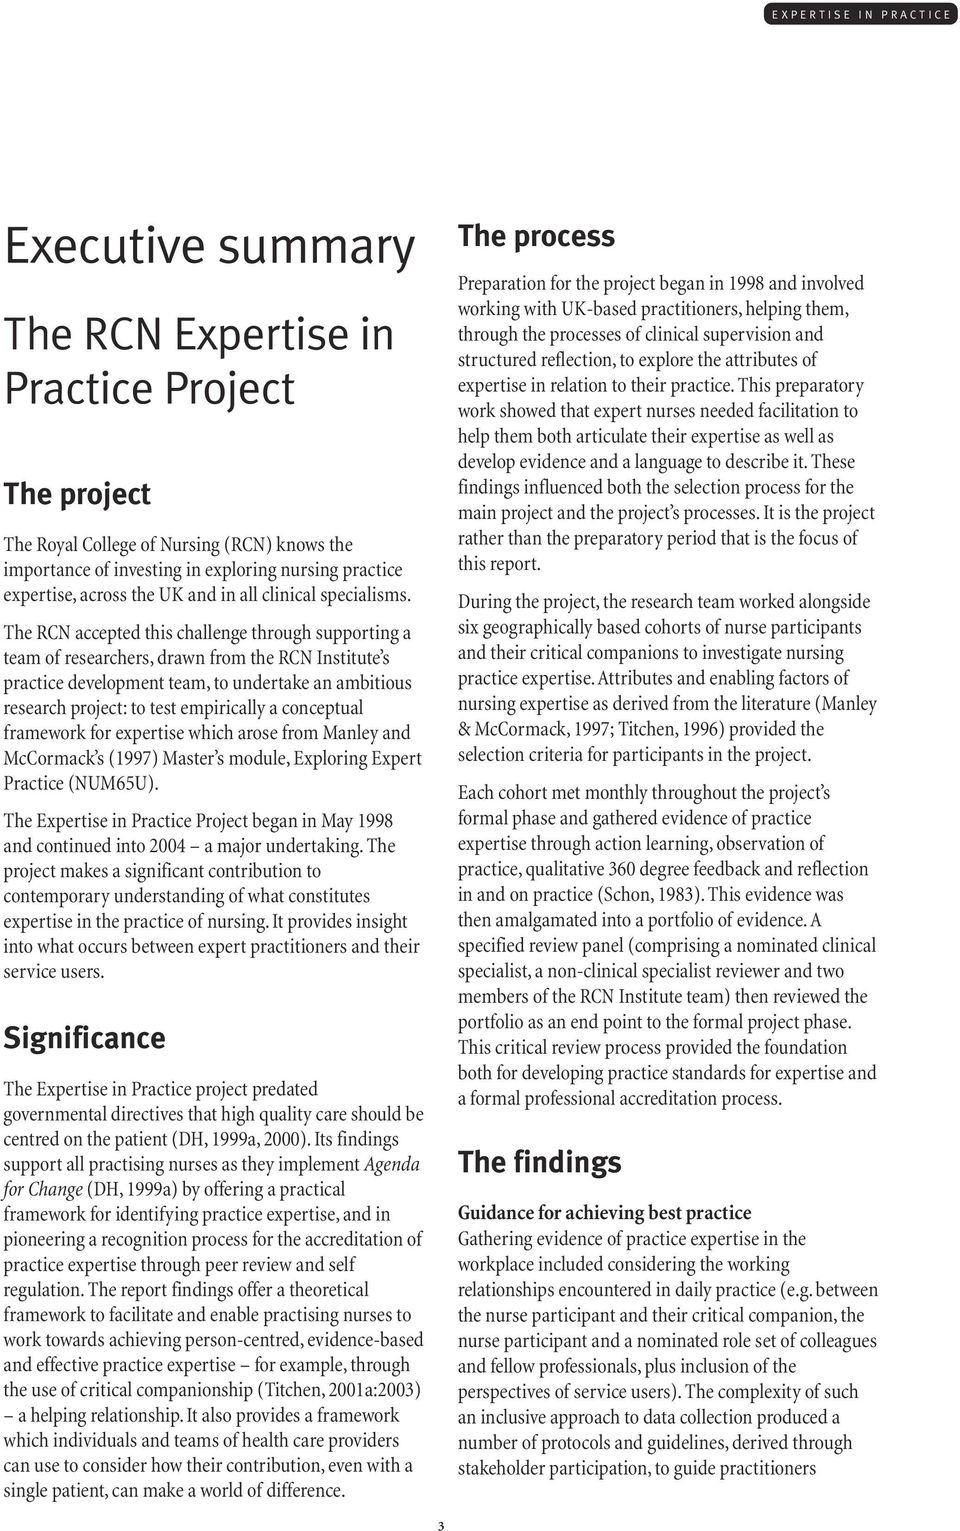 The RCN accepted this challenge through supporting a team of researchers, drawn from the RCN Institute s practice development team, to undertake an ambitious research project: to test empirically a